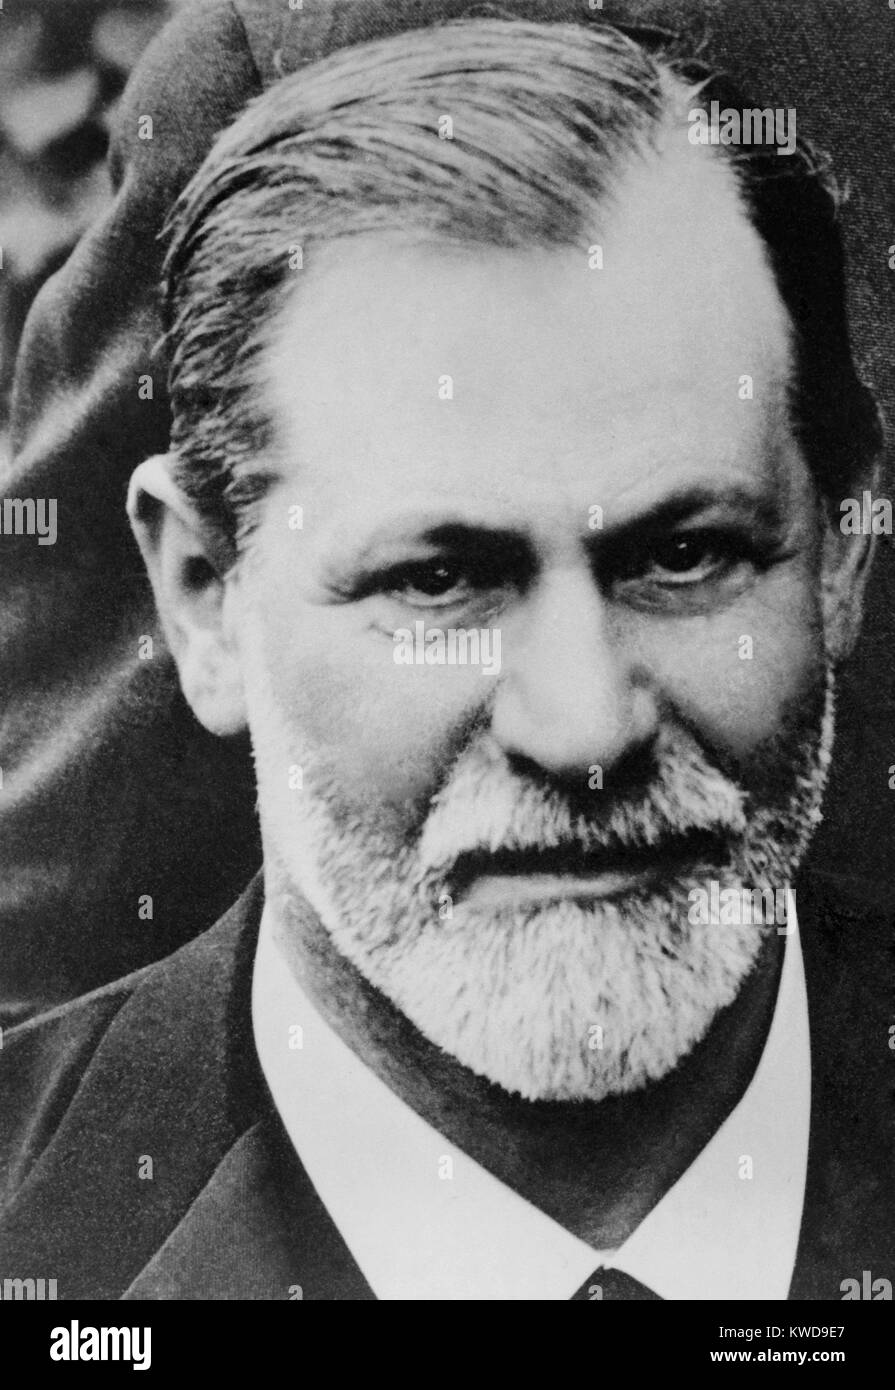 Sigmund Freud, head and shoulders portrait, 1909. The image is cropped from group photograph taken at Clark University, - Stock Image